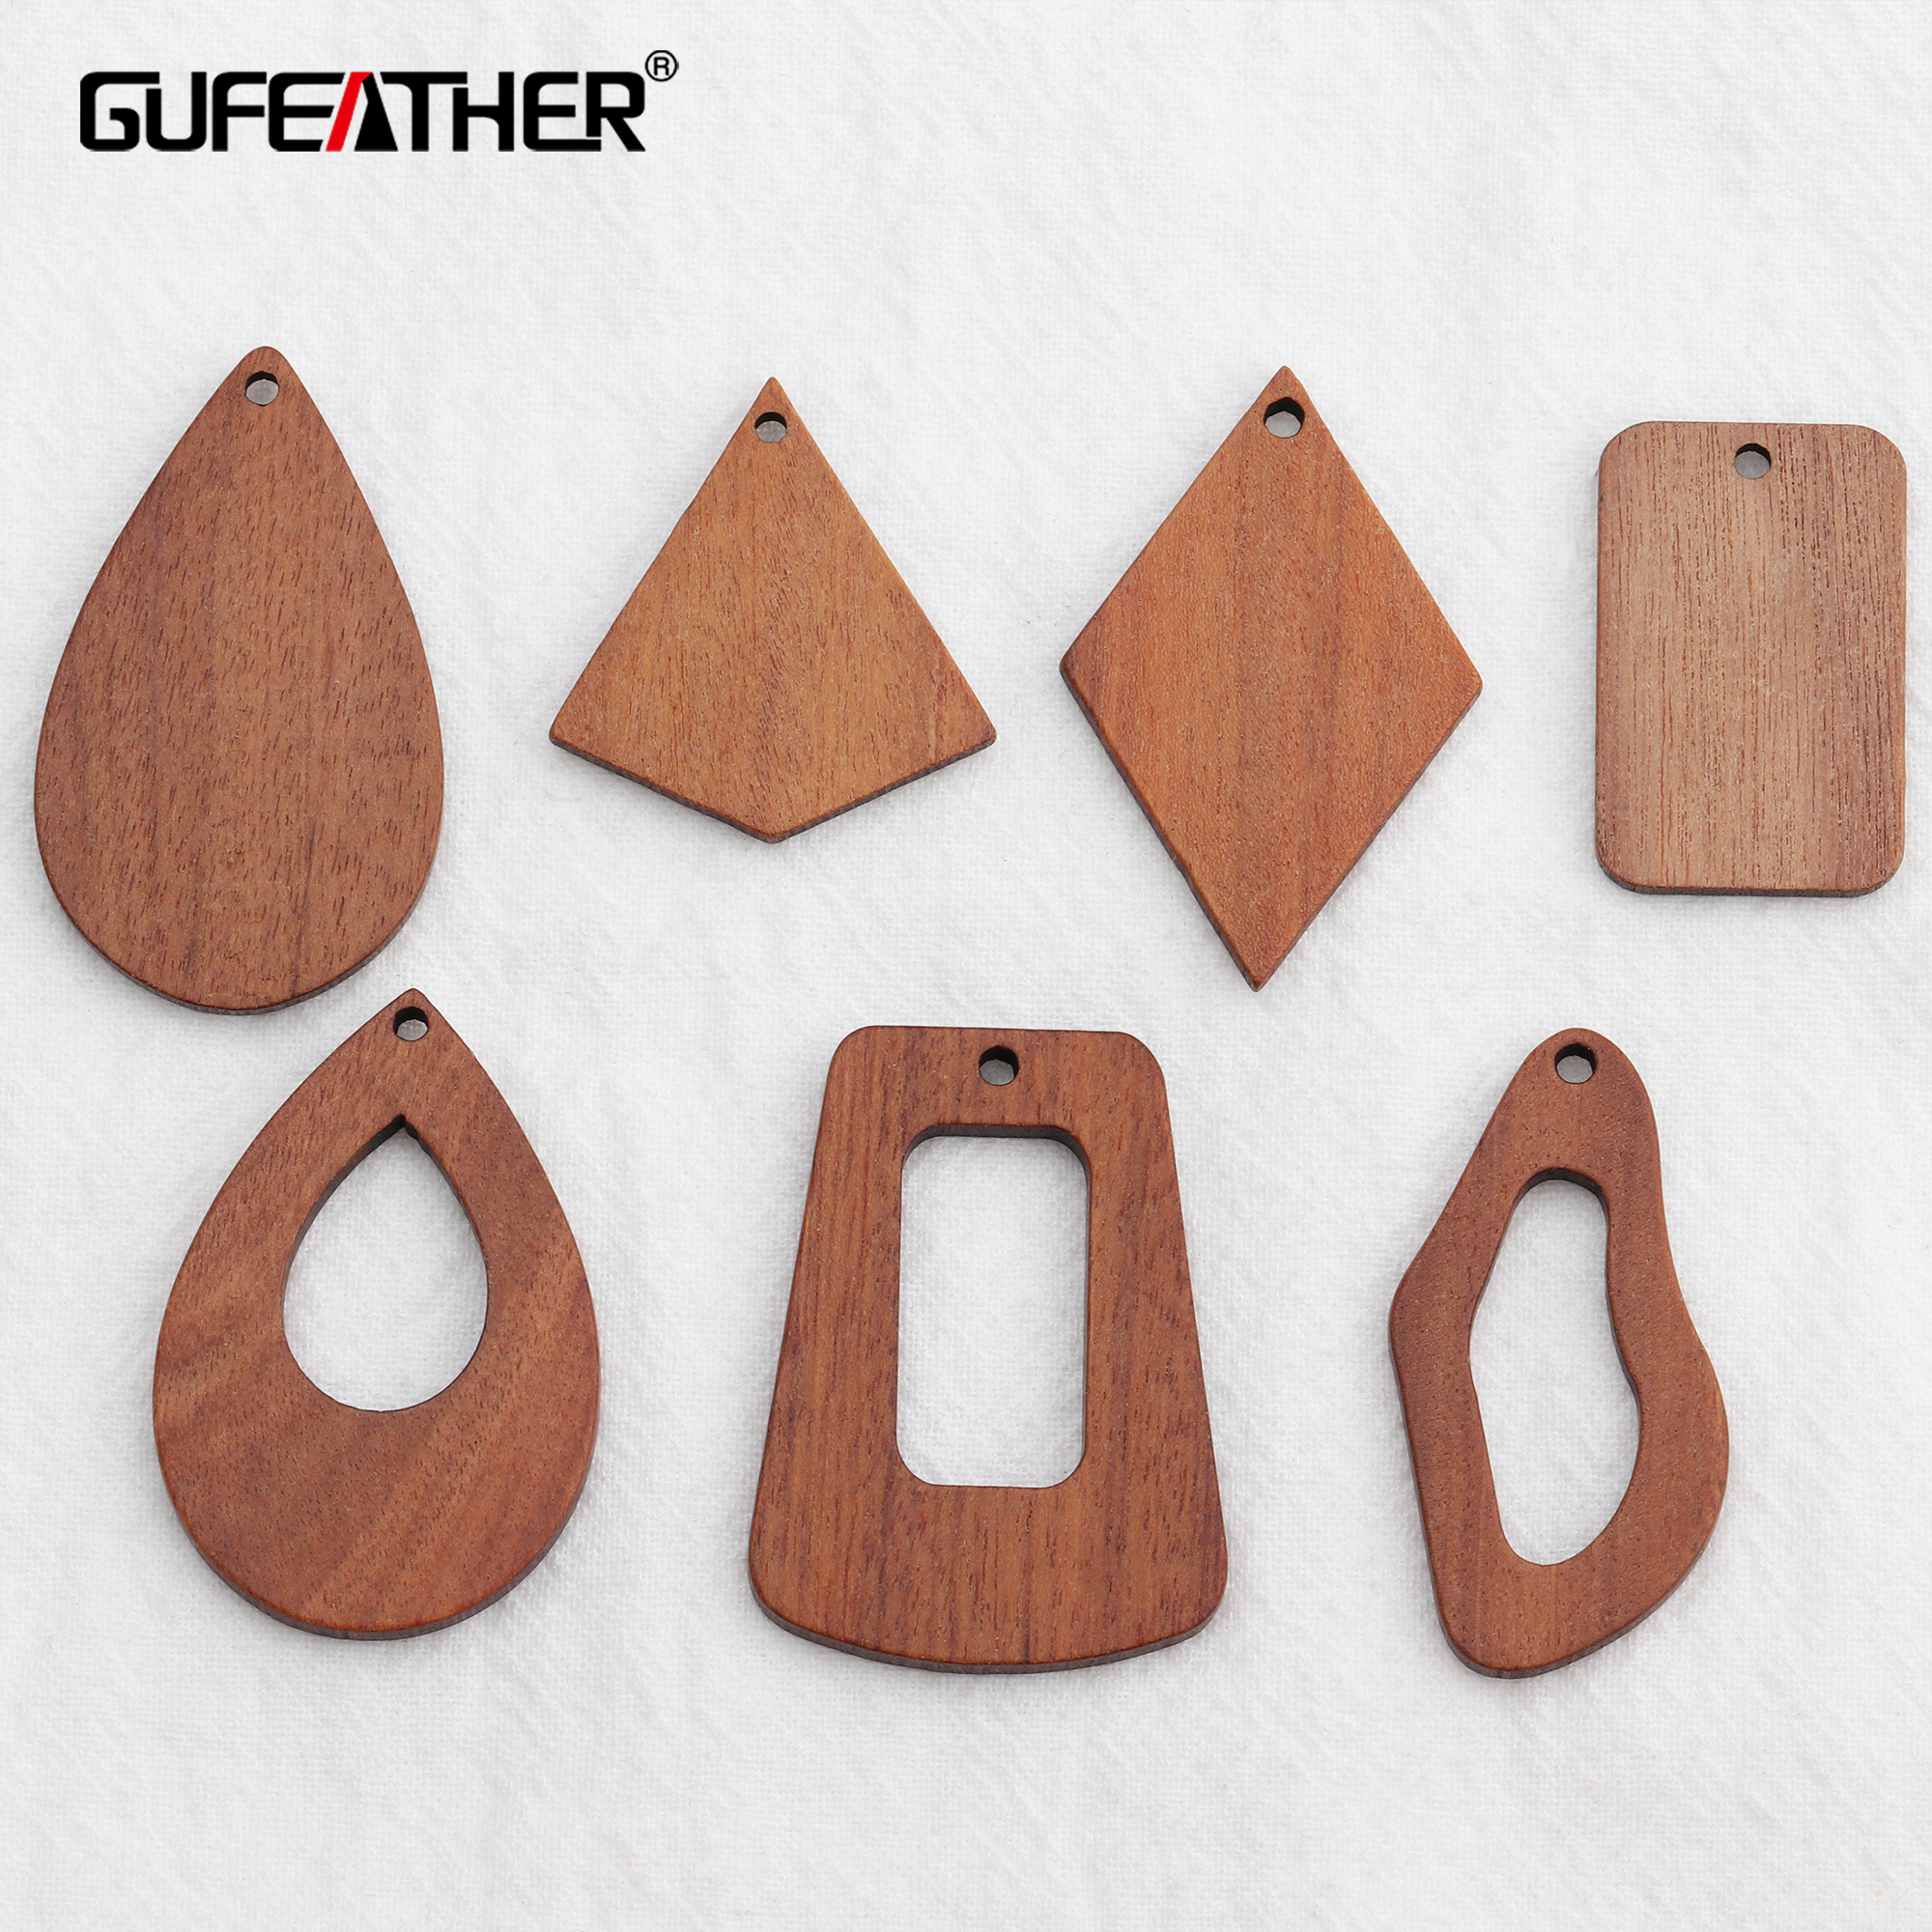 GUFEATHER M585,jewelry Accessories,natural Wood Accessories,jewelry Making,hand Made,jewelry Findings,diy Earrings Pendant,10pcs